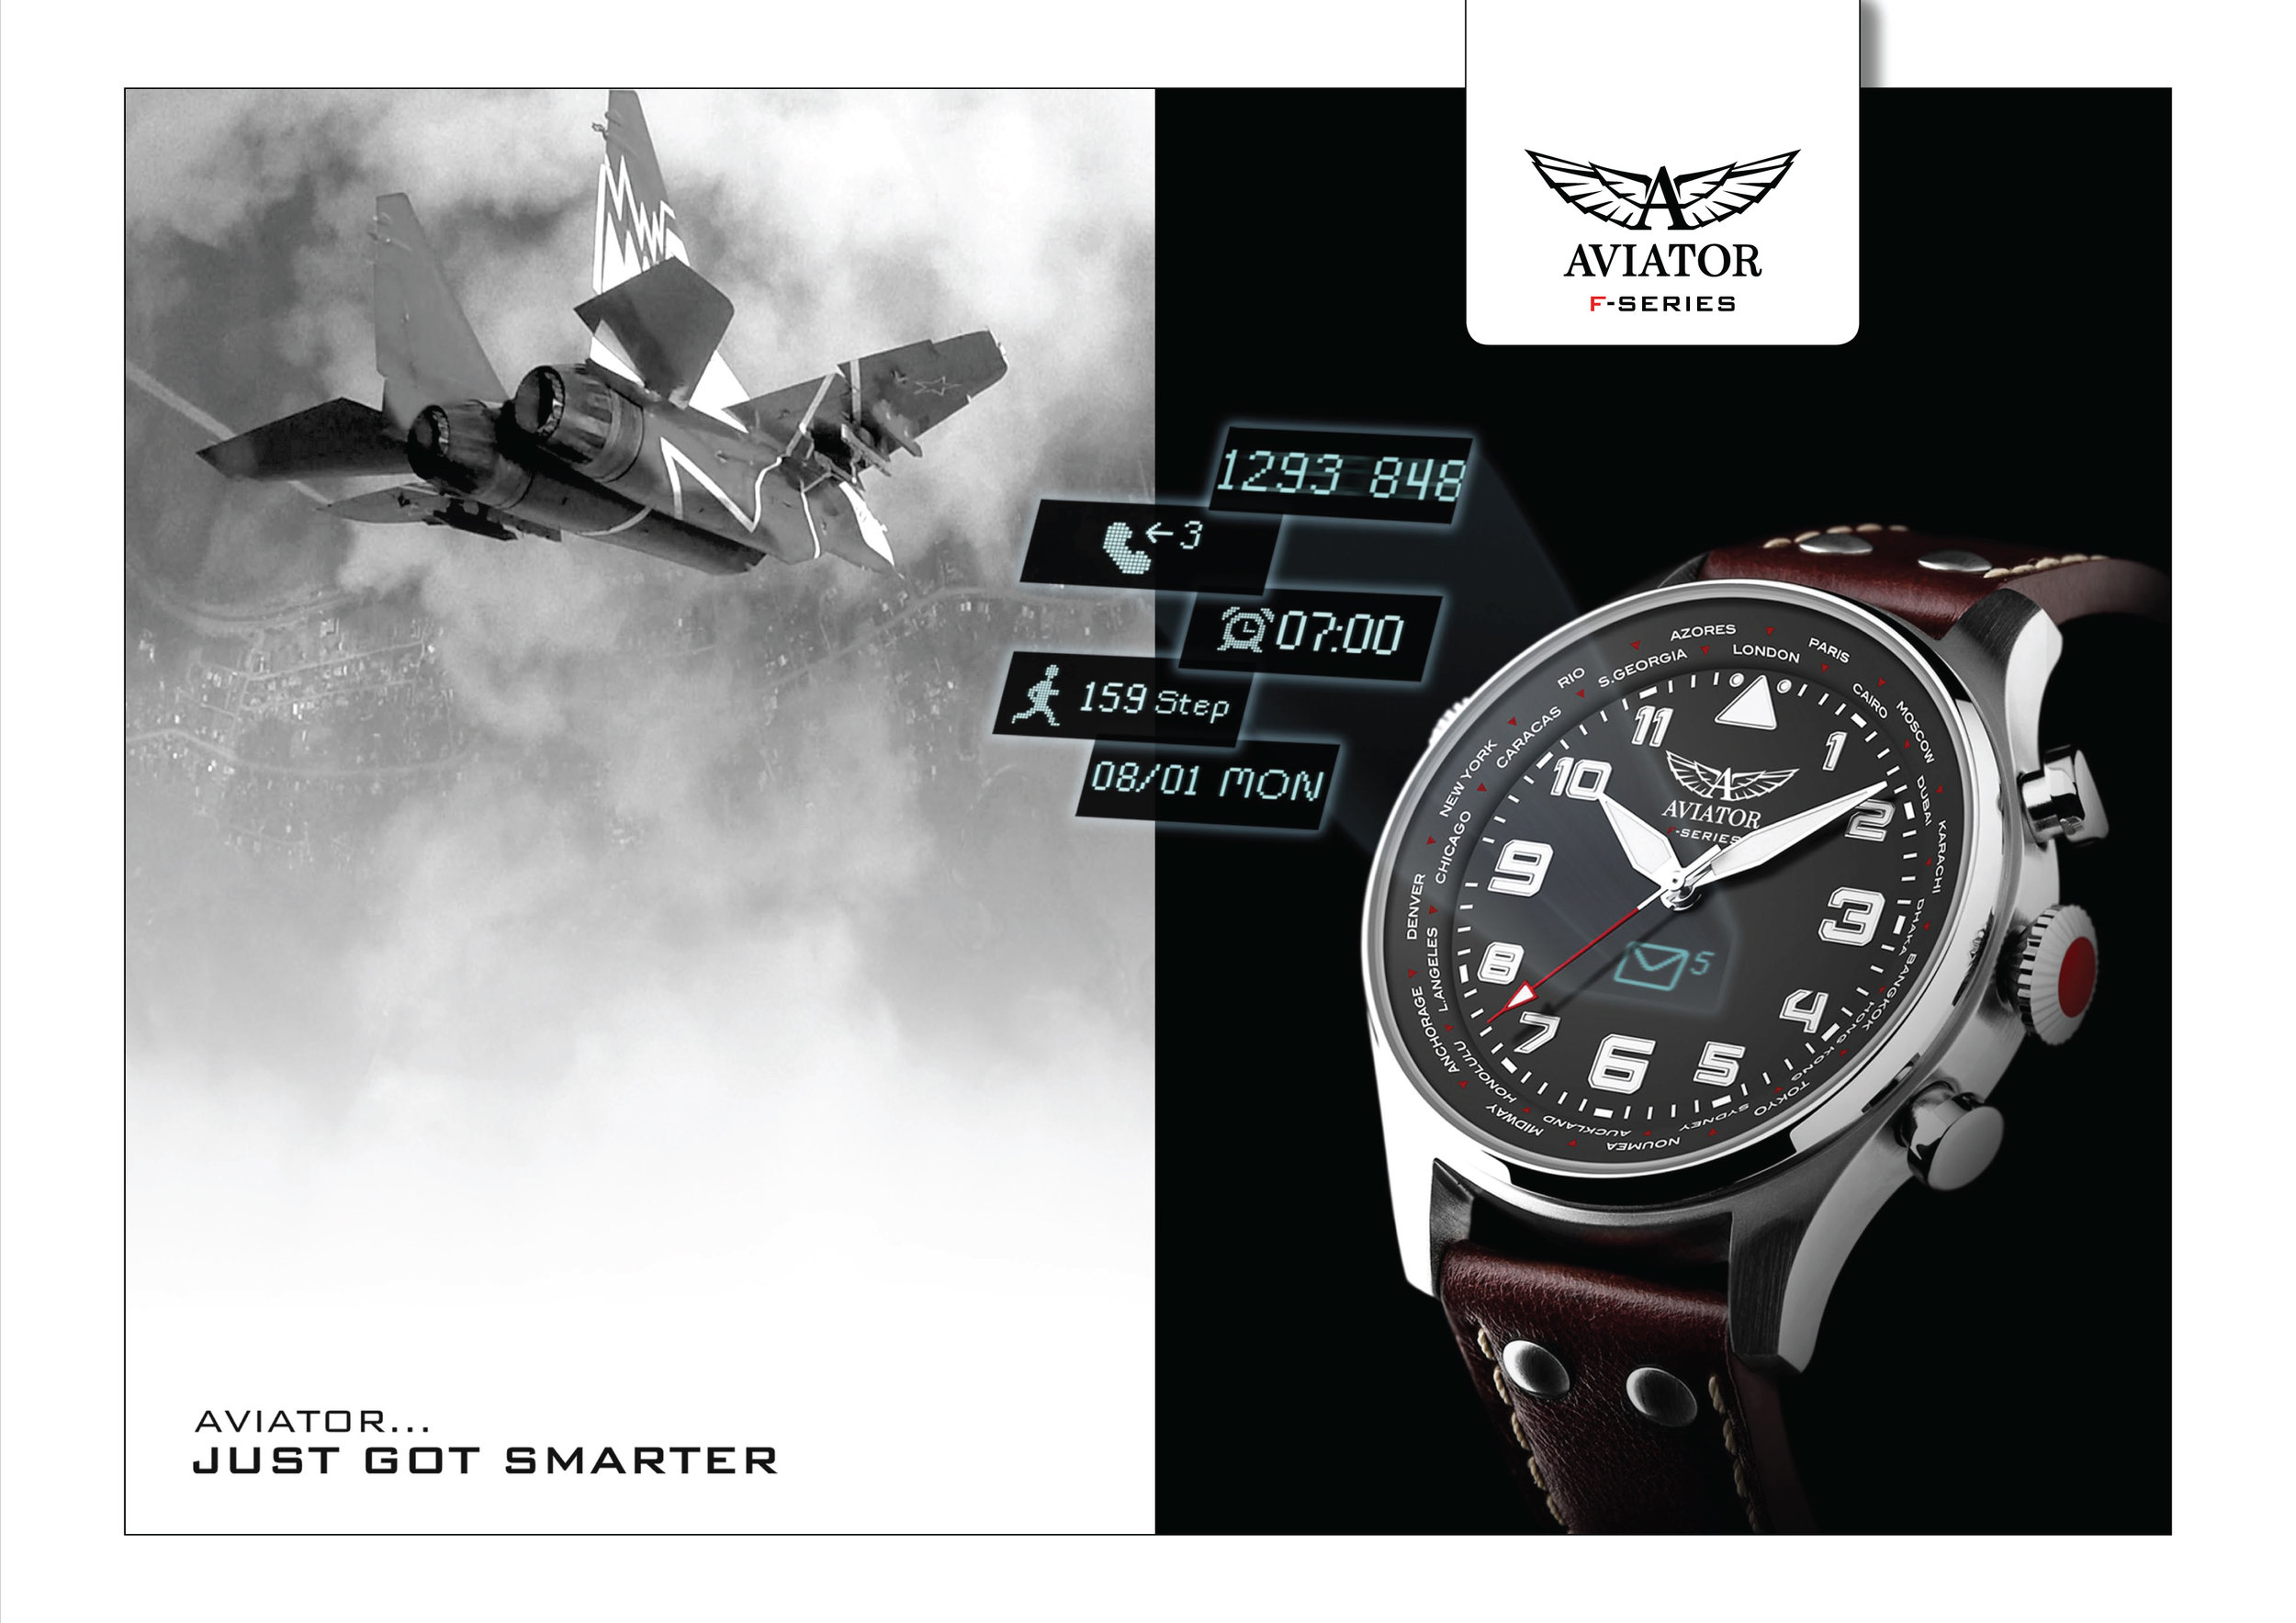 aviator-smart-watch_new-product_scorpio-worldwide_travel-retail-distributor